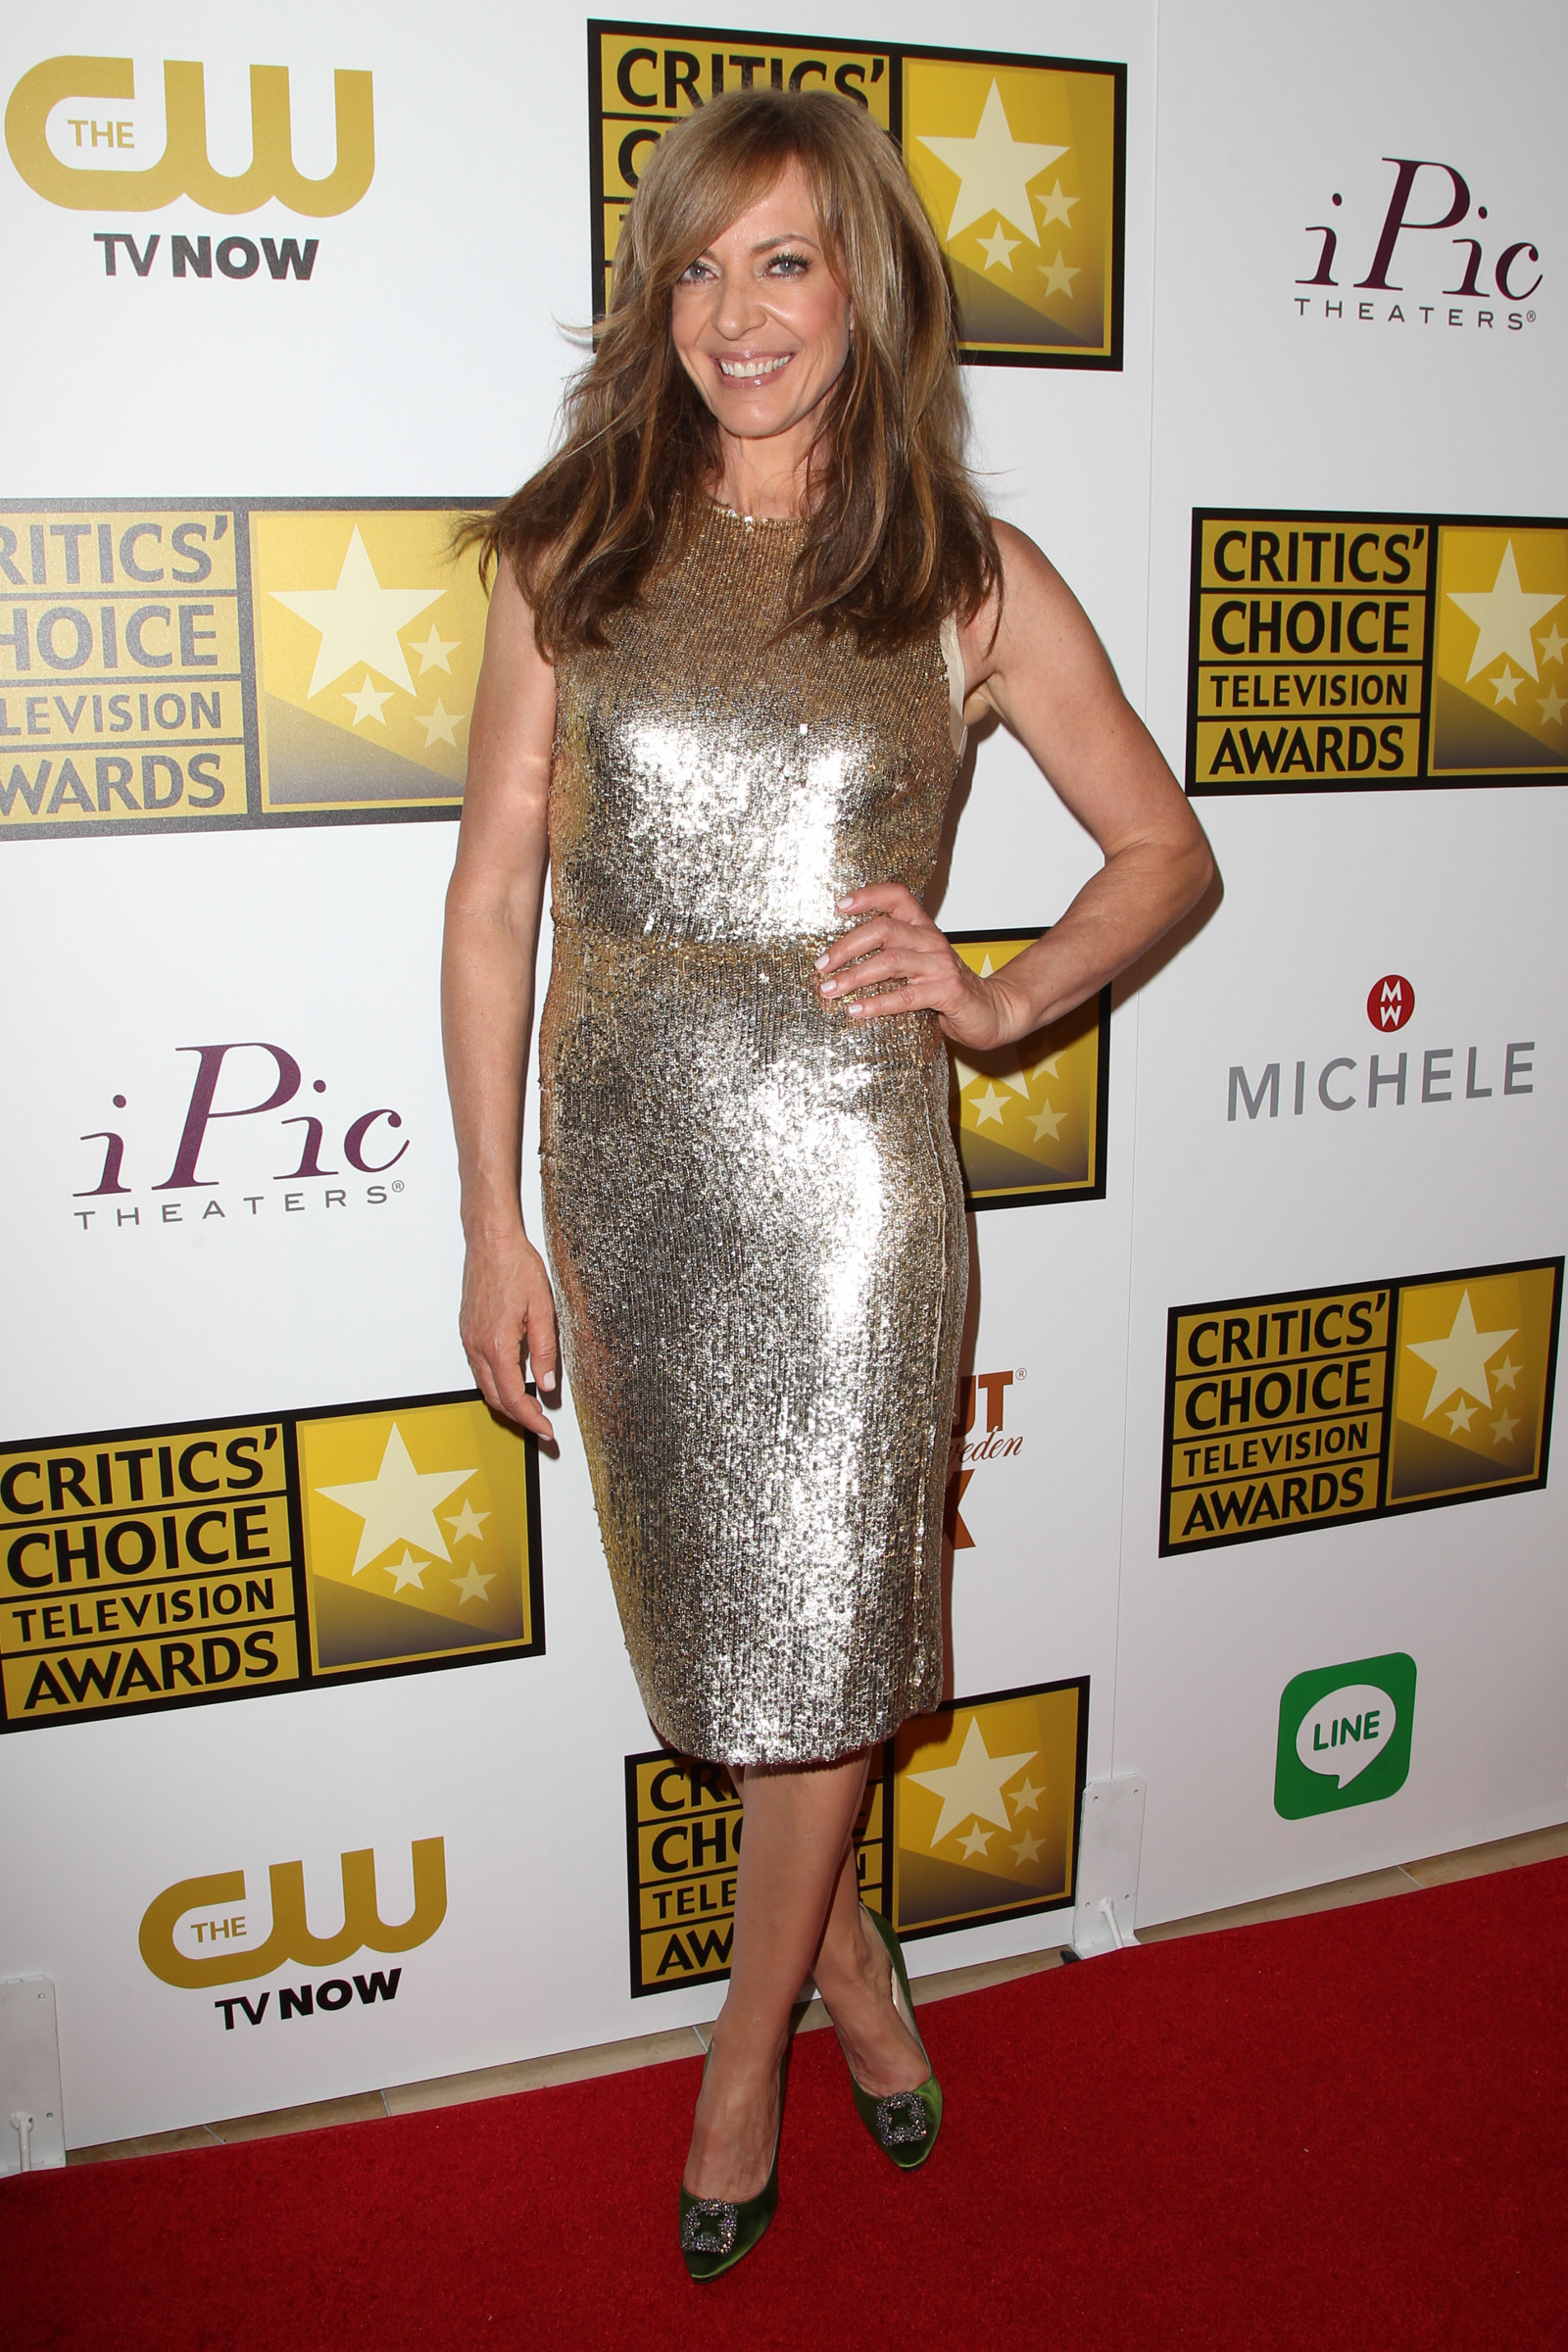 Allison Janney at the Critic's Choice Awards